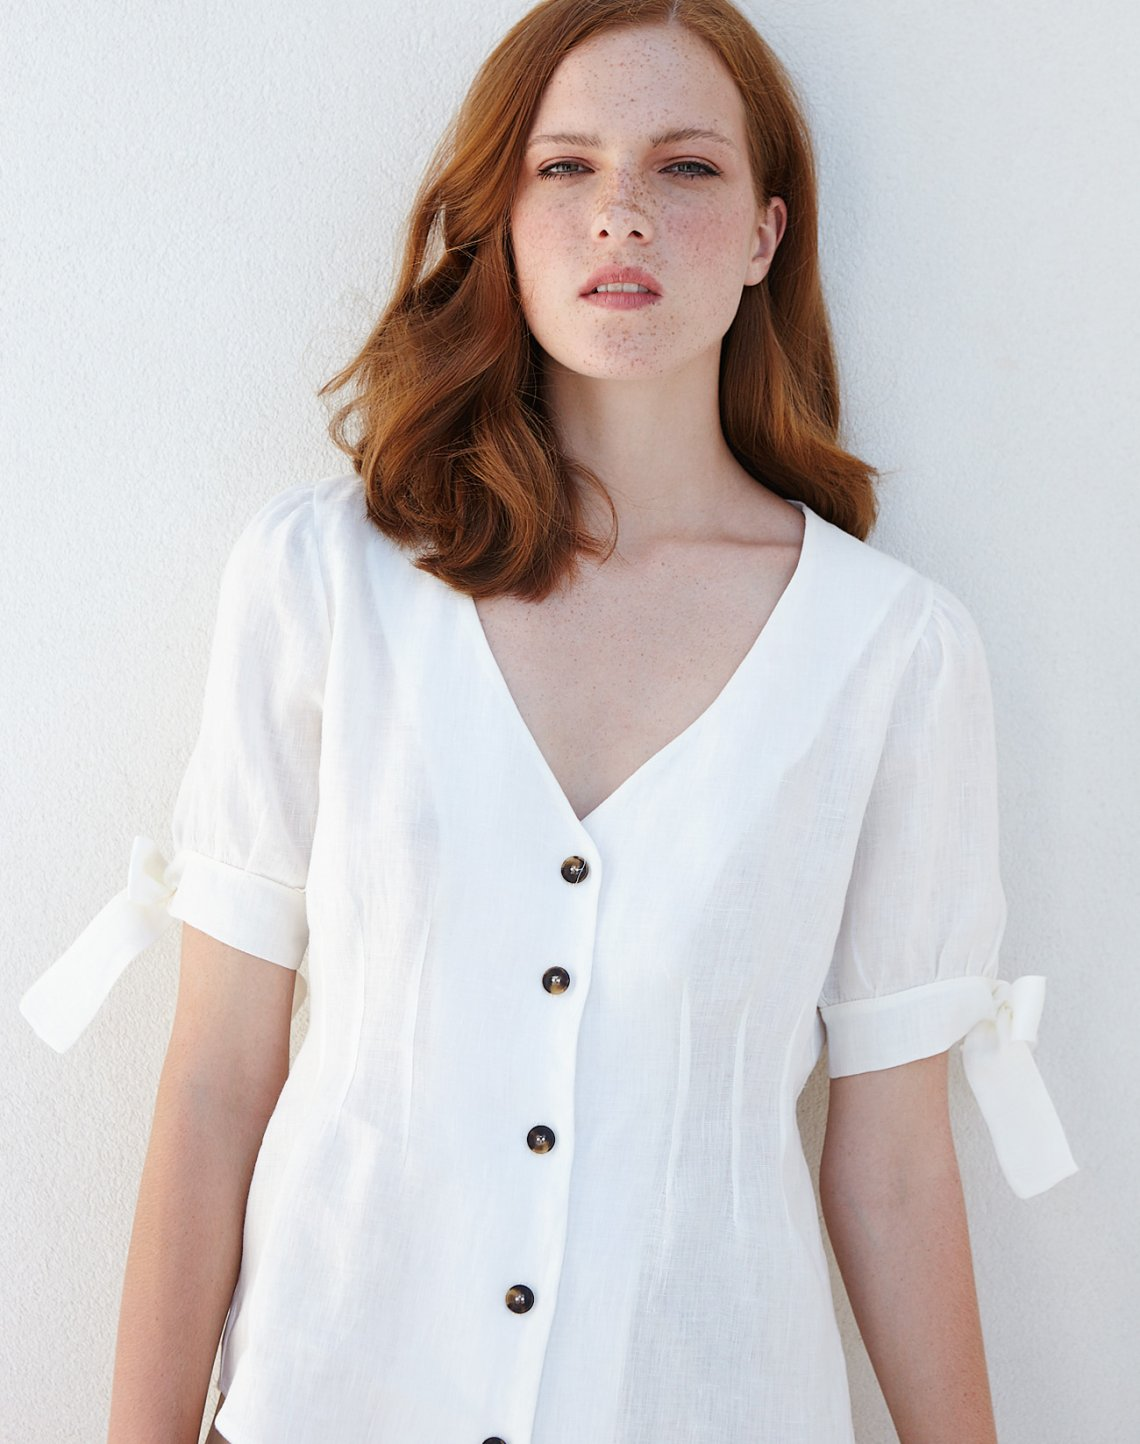 Linen top with buttons